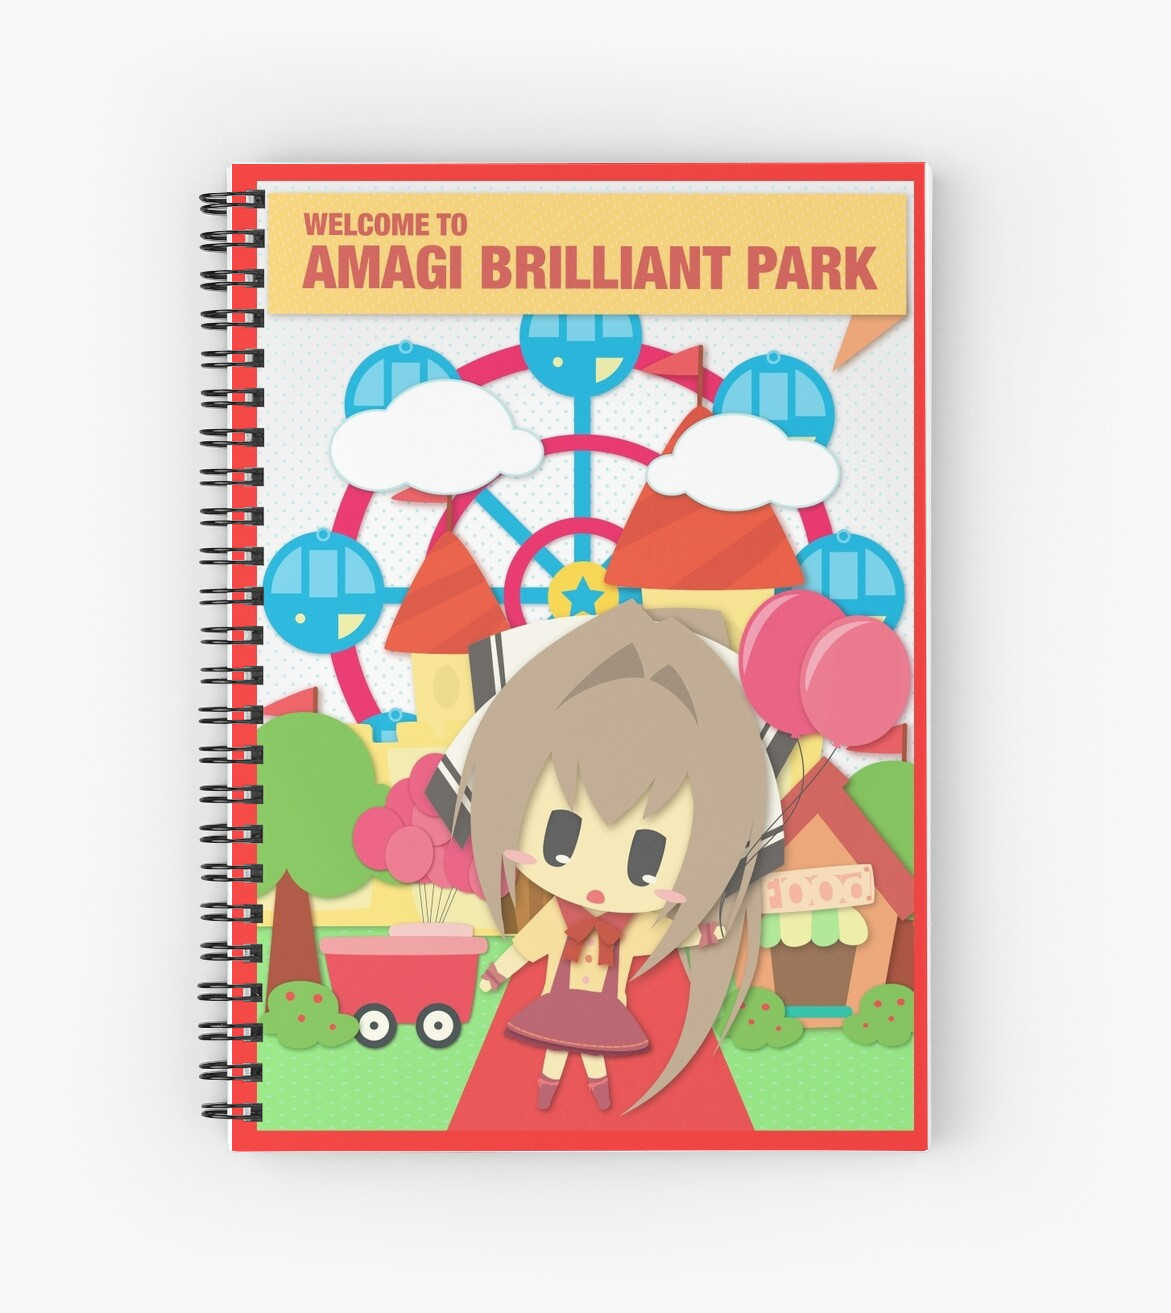 Amagi Brilliant Park by dcinfected